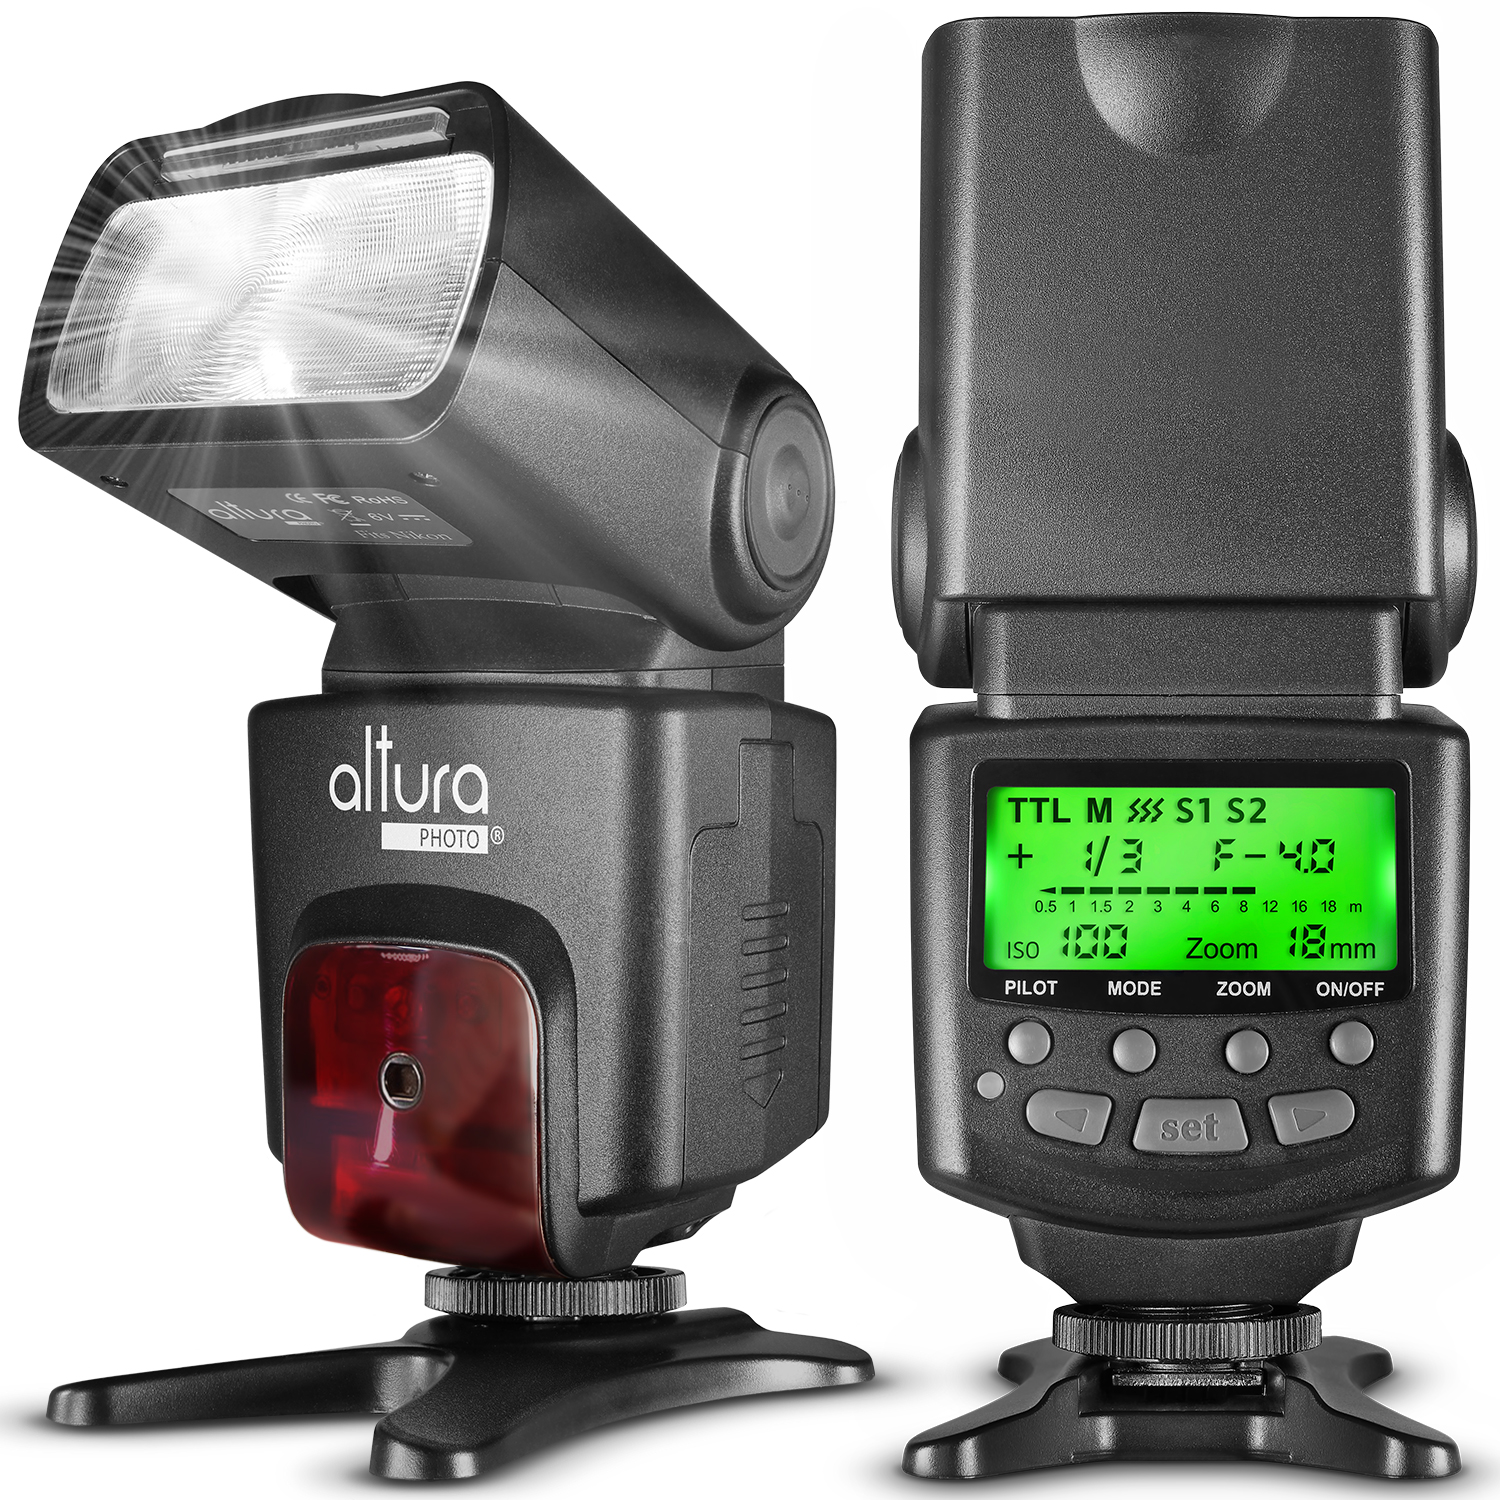 Altura Photo AP-N1001 Speedlite Flash for Nikon DSLR Cameras with Auto-Focus, I-TTL, Wireless Trigger Slave Function